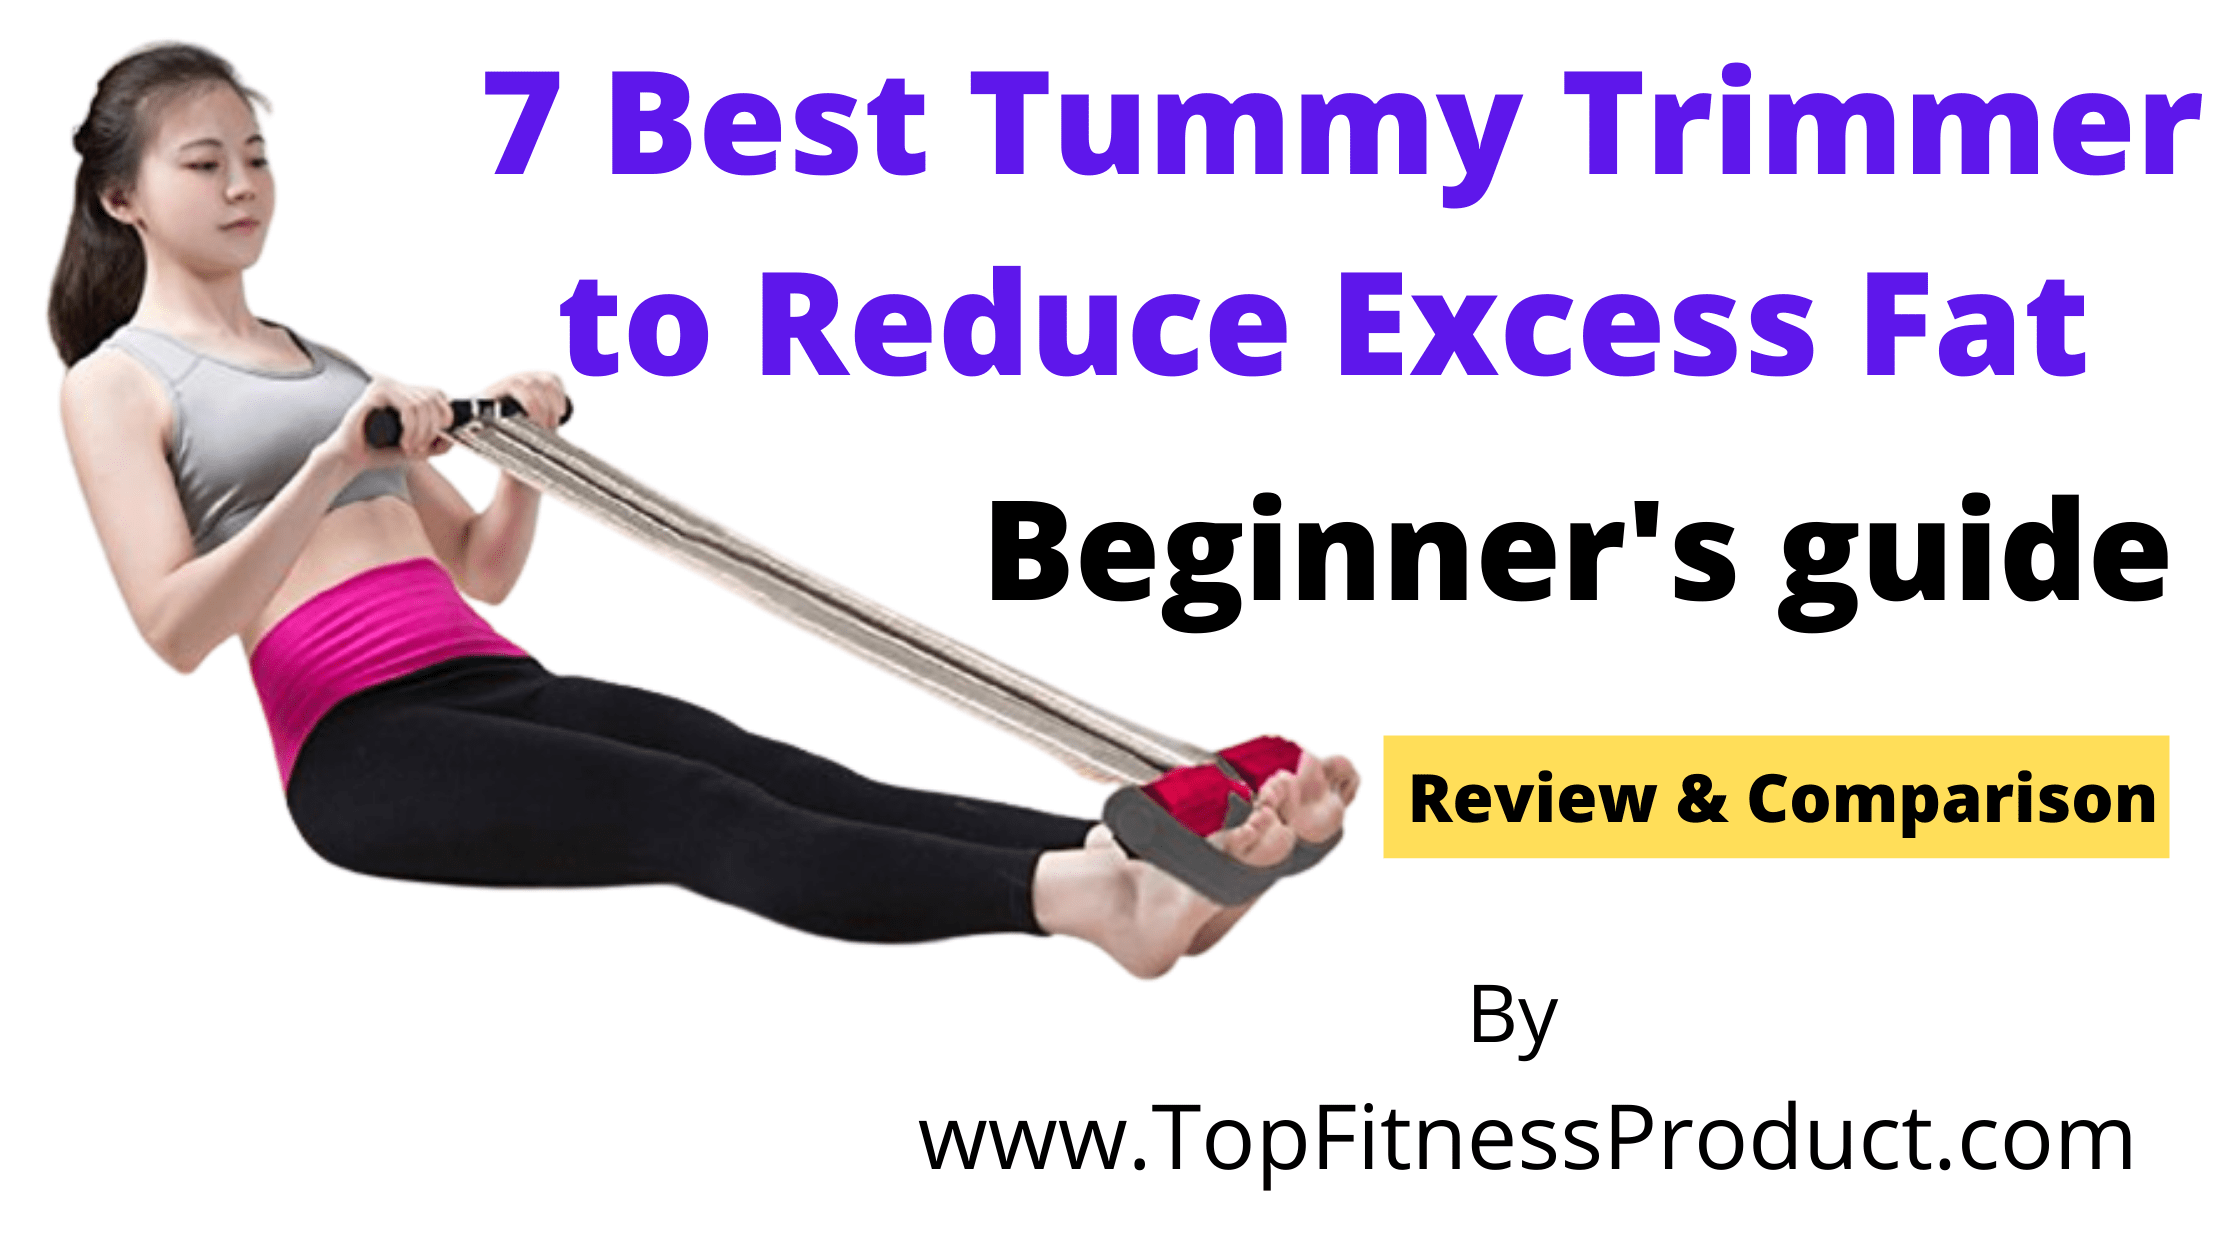 Best Tummy Trimmer to reduce Excess Fat